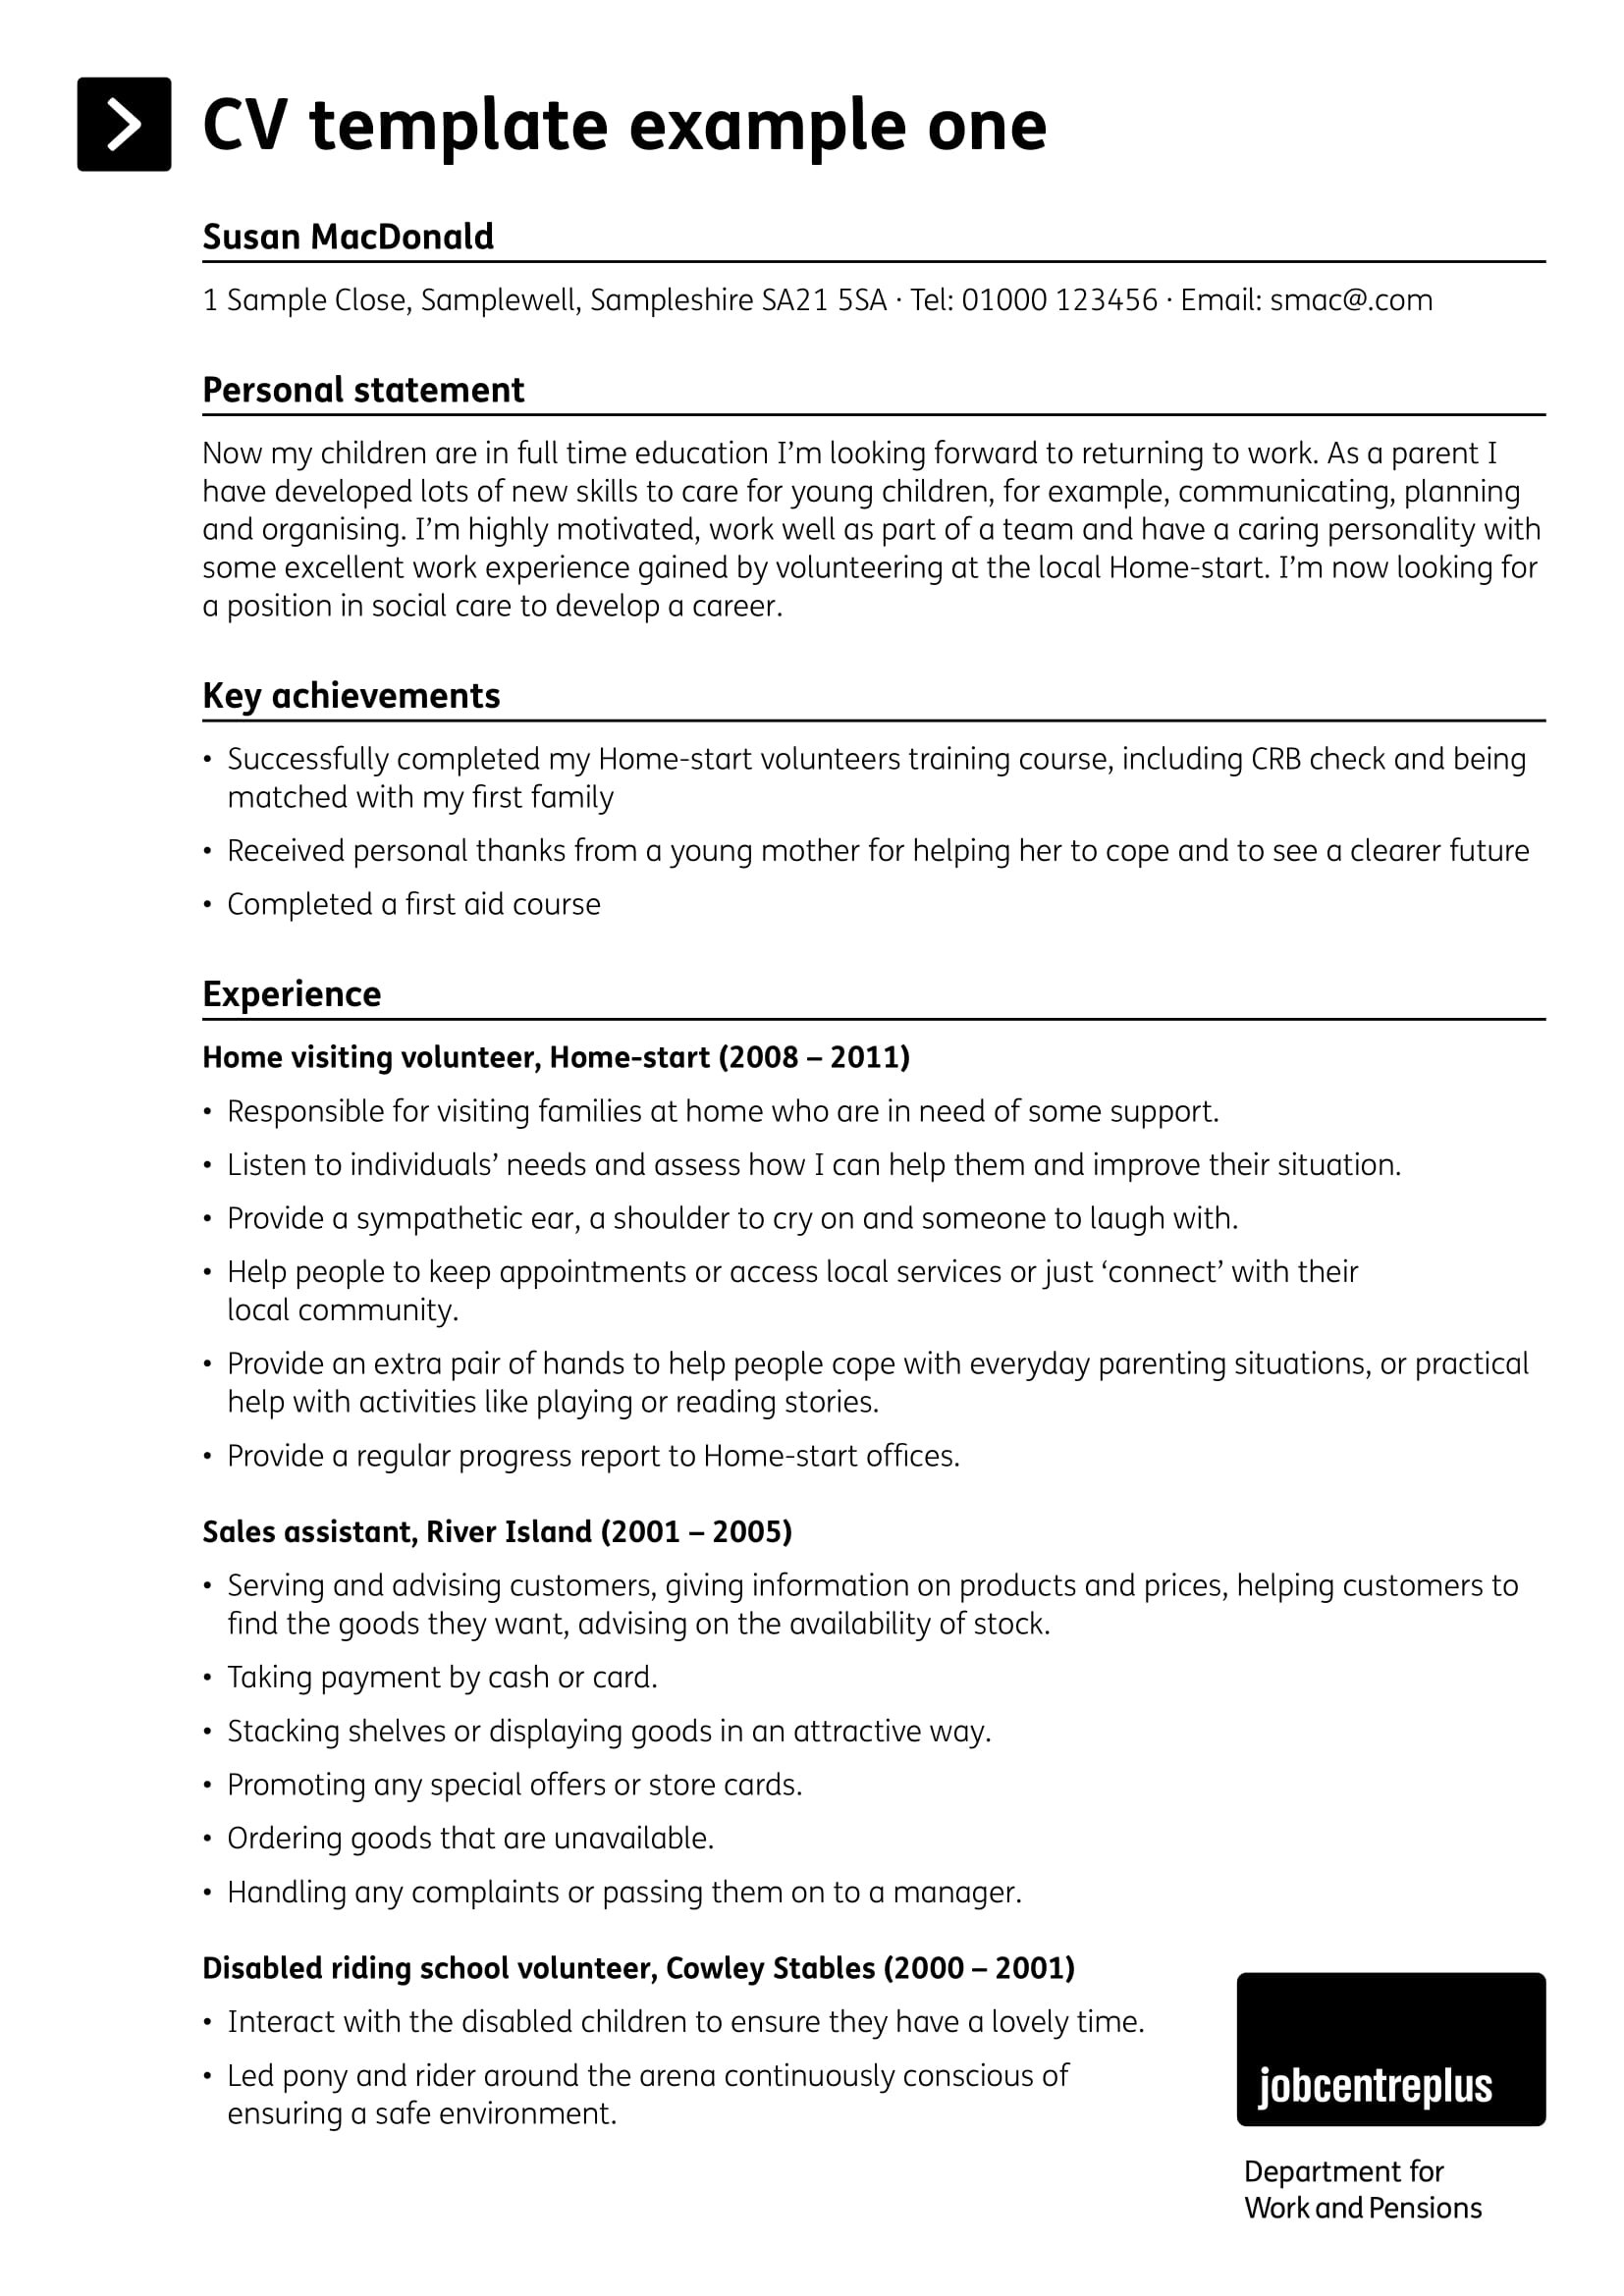 10 Personal Summary Examples  PDF